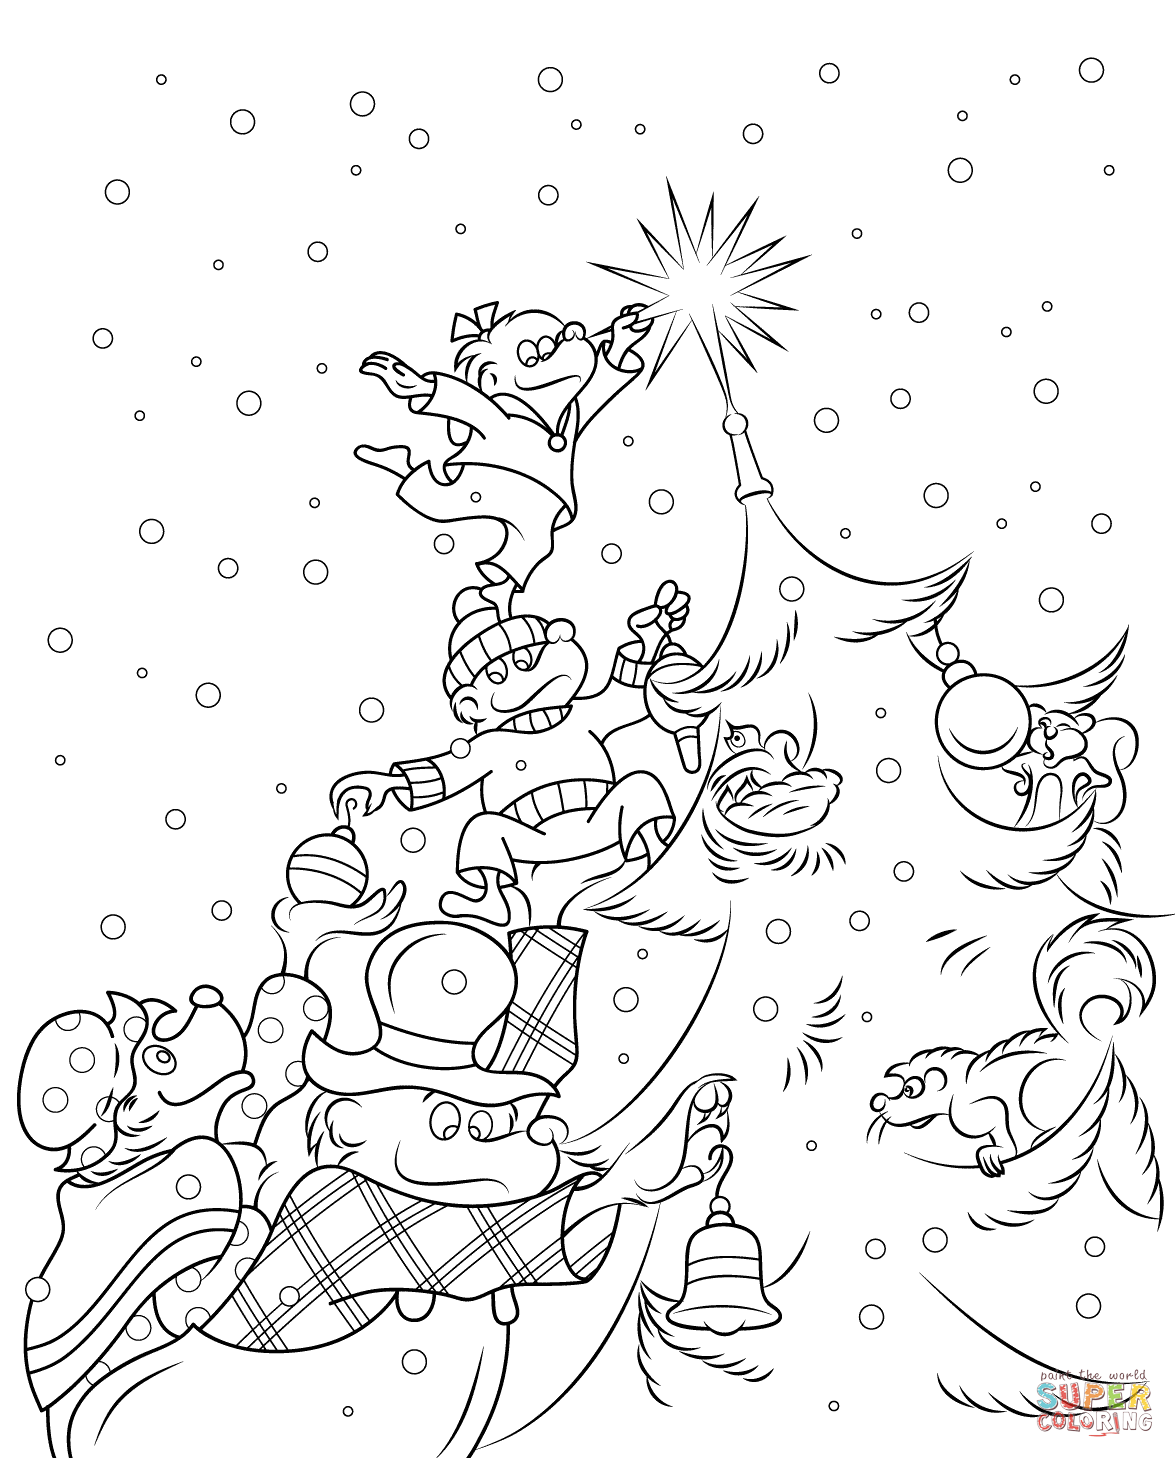 Berenstain Bears Colouring Pages